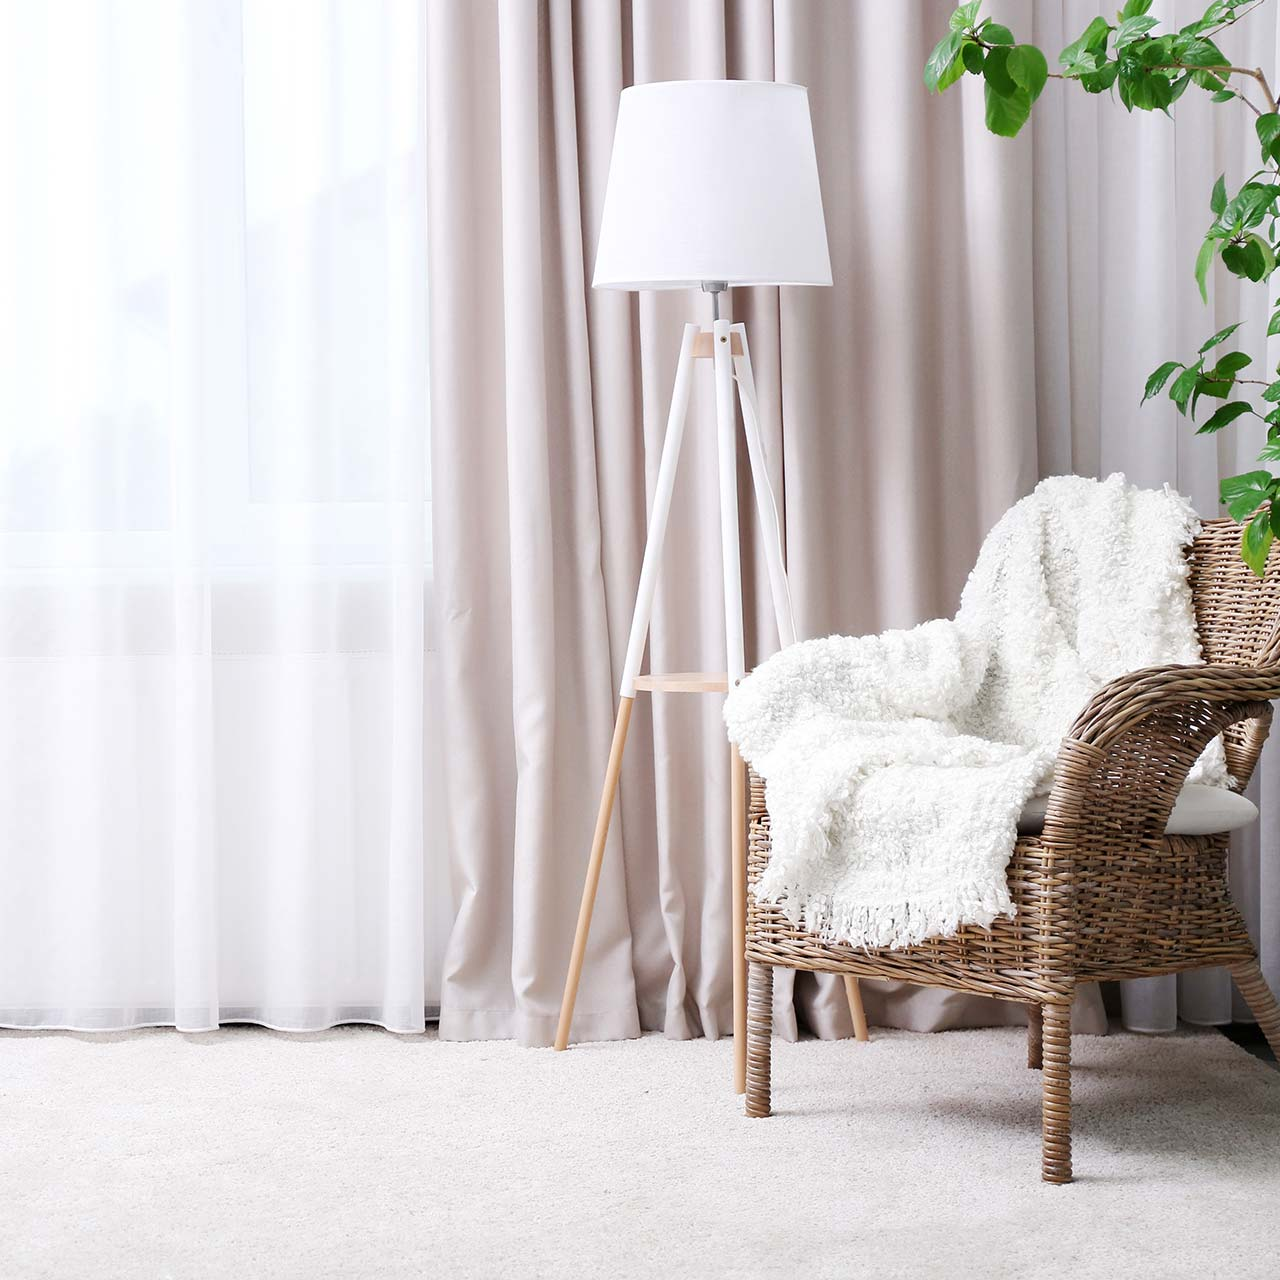 Choose beautiful patterned drapes and curtains while deciding your living room interiors